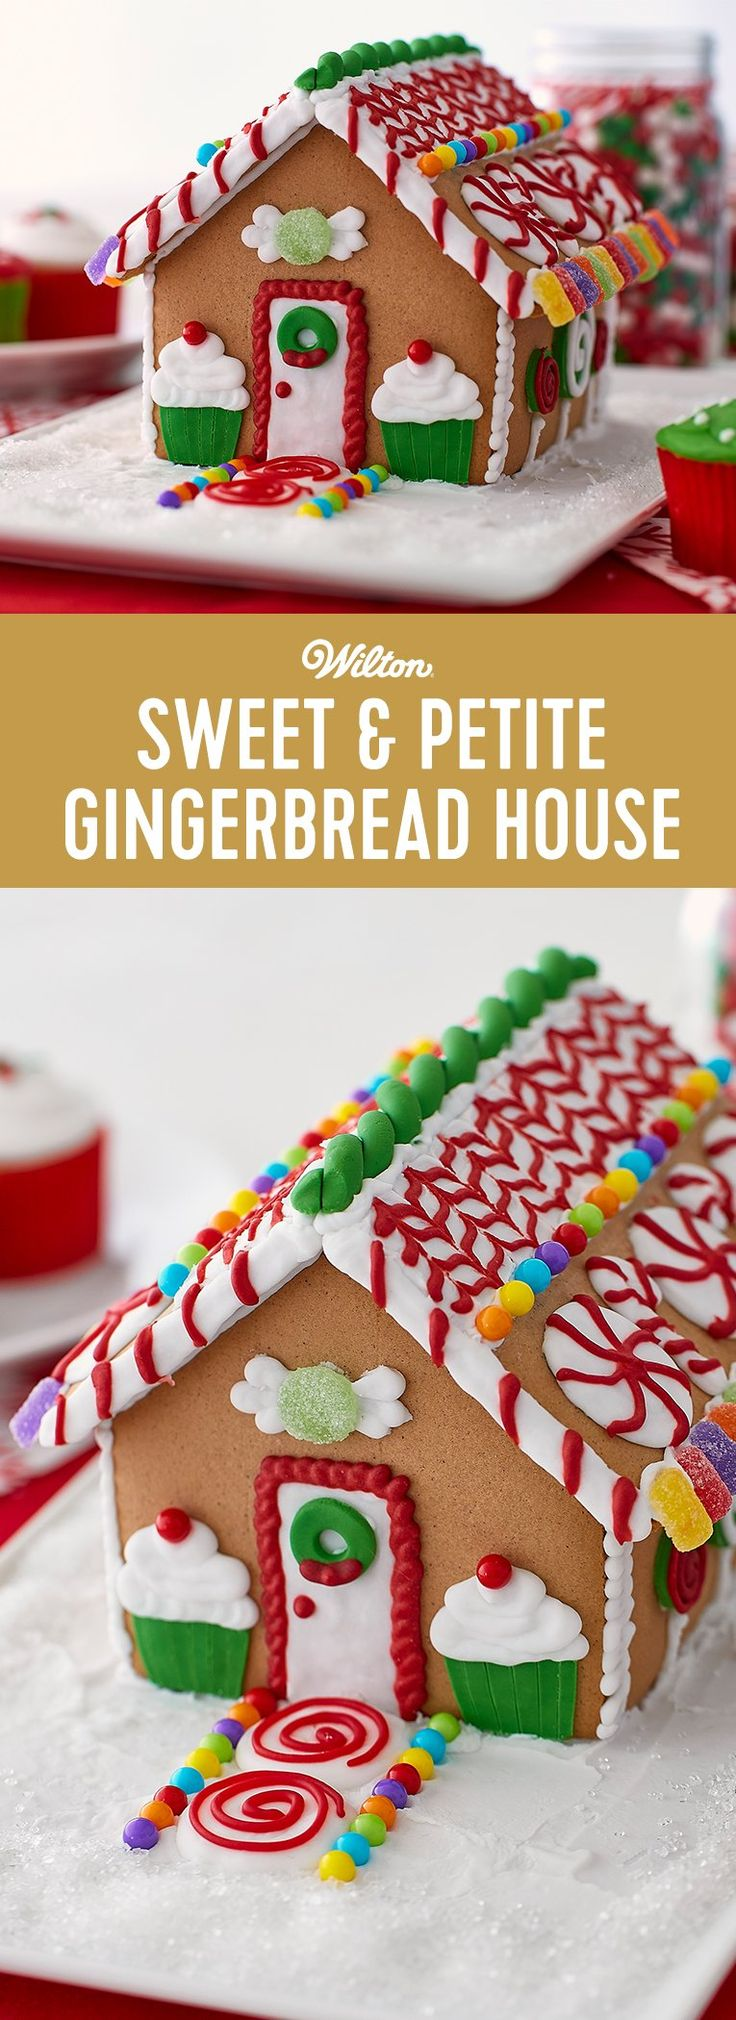 How to Decorate a Sweet & Petite Gingerbread House - These decorated houses are so trend worthy! It's great fun to build and decorate one designed in gingerbread with cute icing and candy decorations. Great fun to decorate at school parties and family celebrations! Skill level: Beginner #gingerbreadhouse #gingerbread #christmas #wiltoncakes